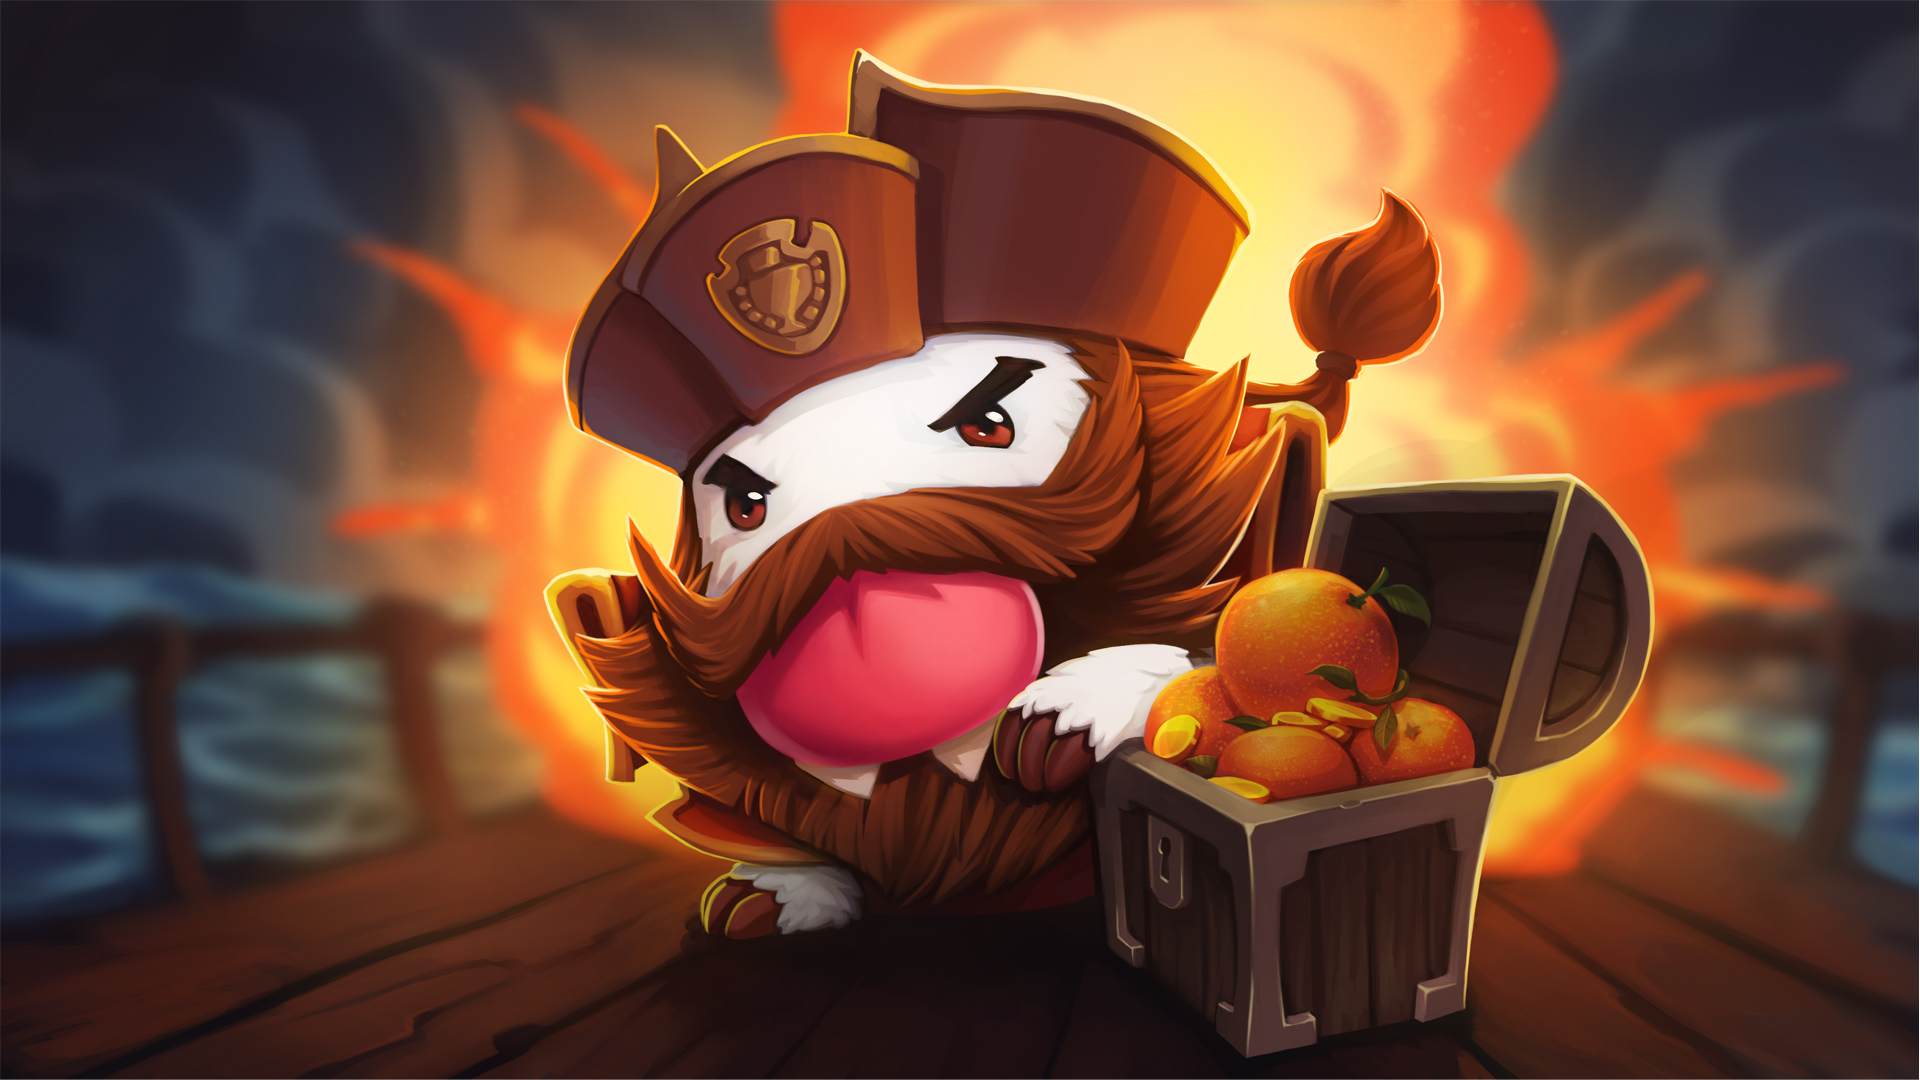 Gangplank Poro wallpaper